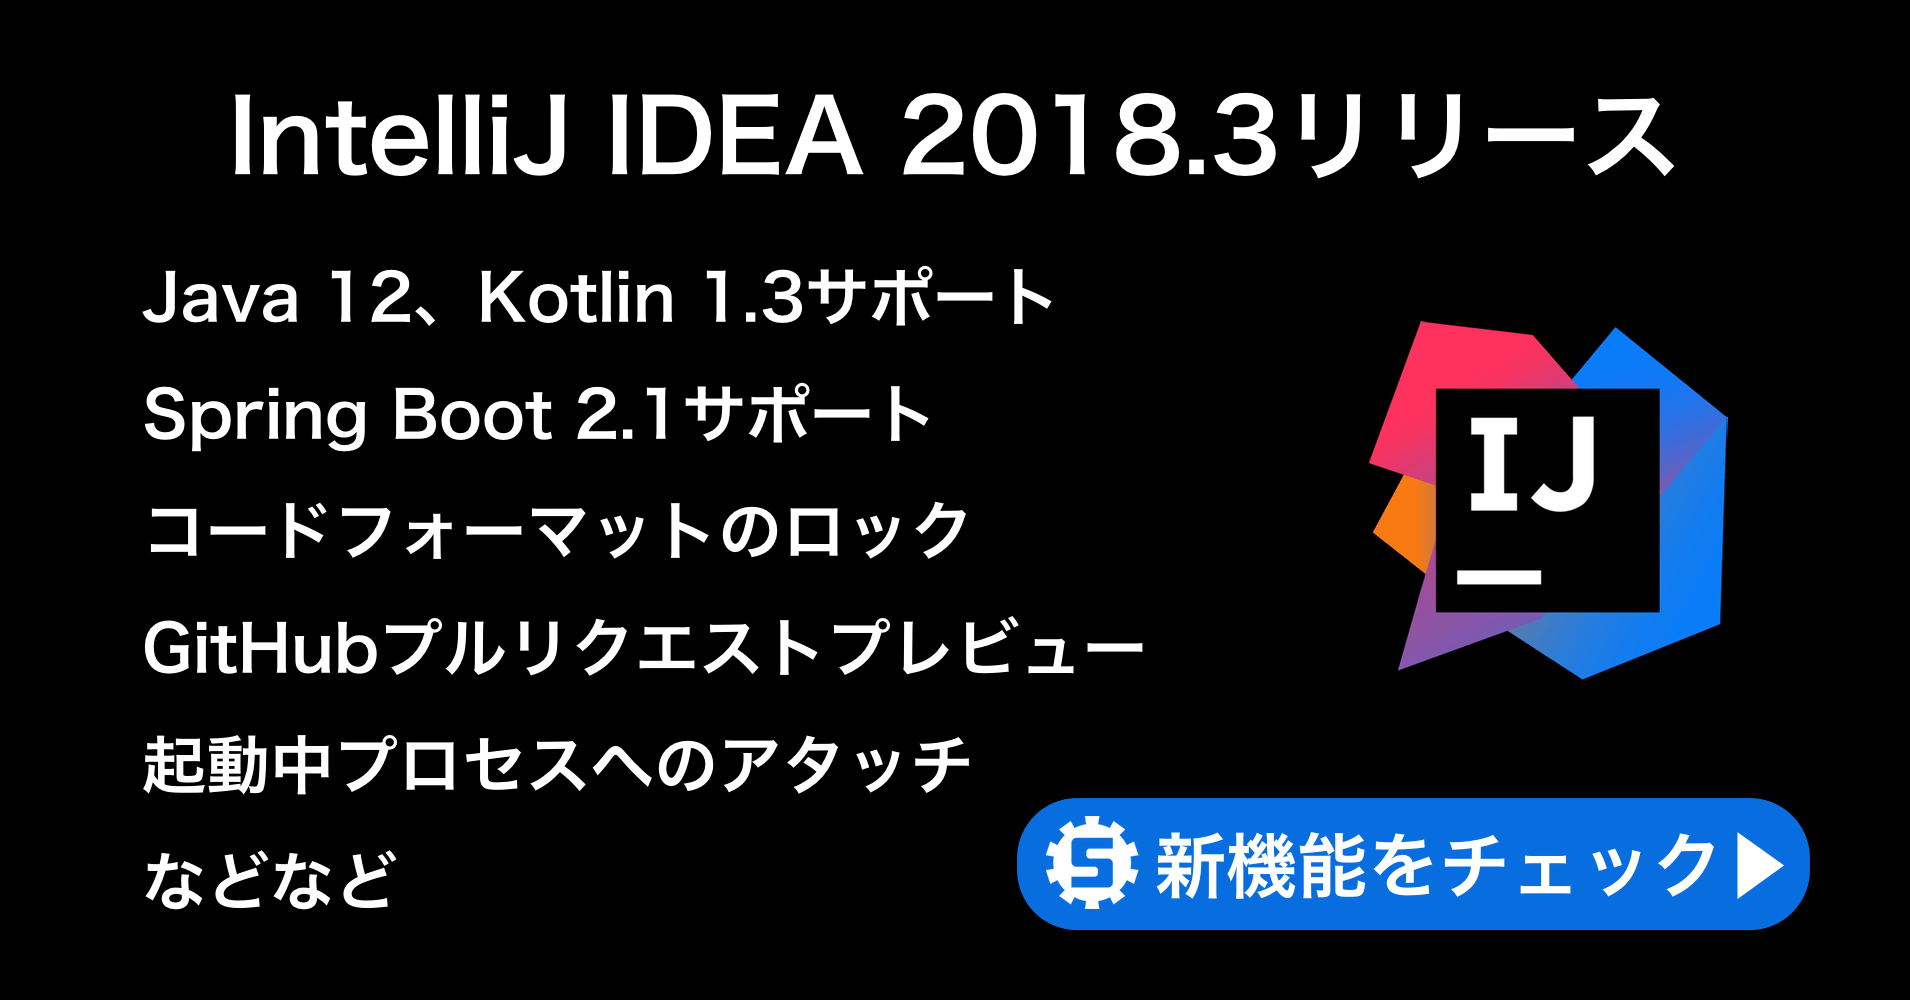 IntelliJ IDEA 2018.3の新機能